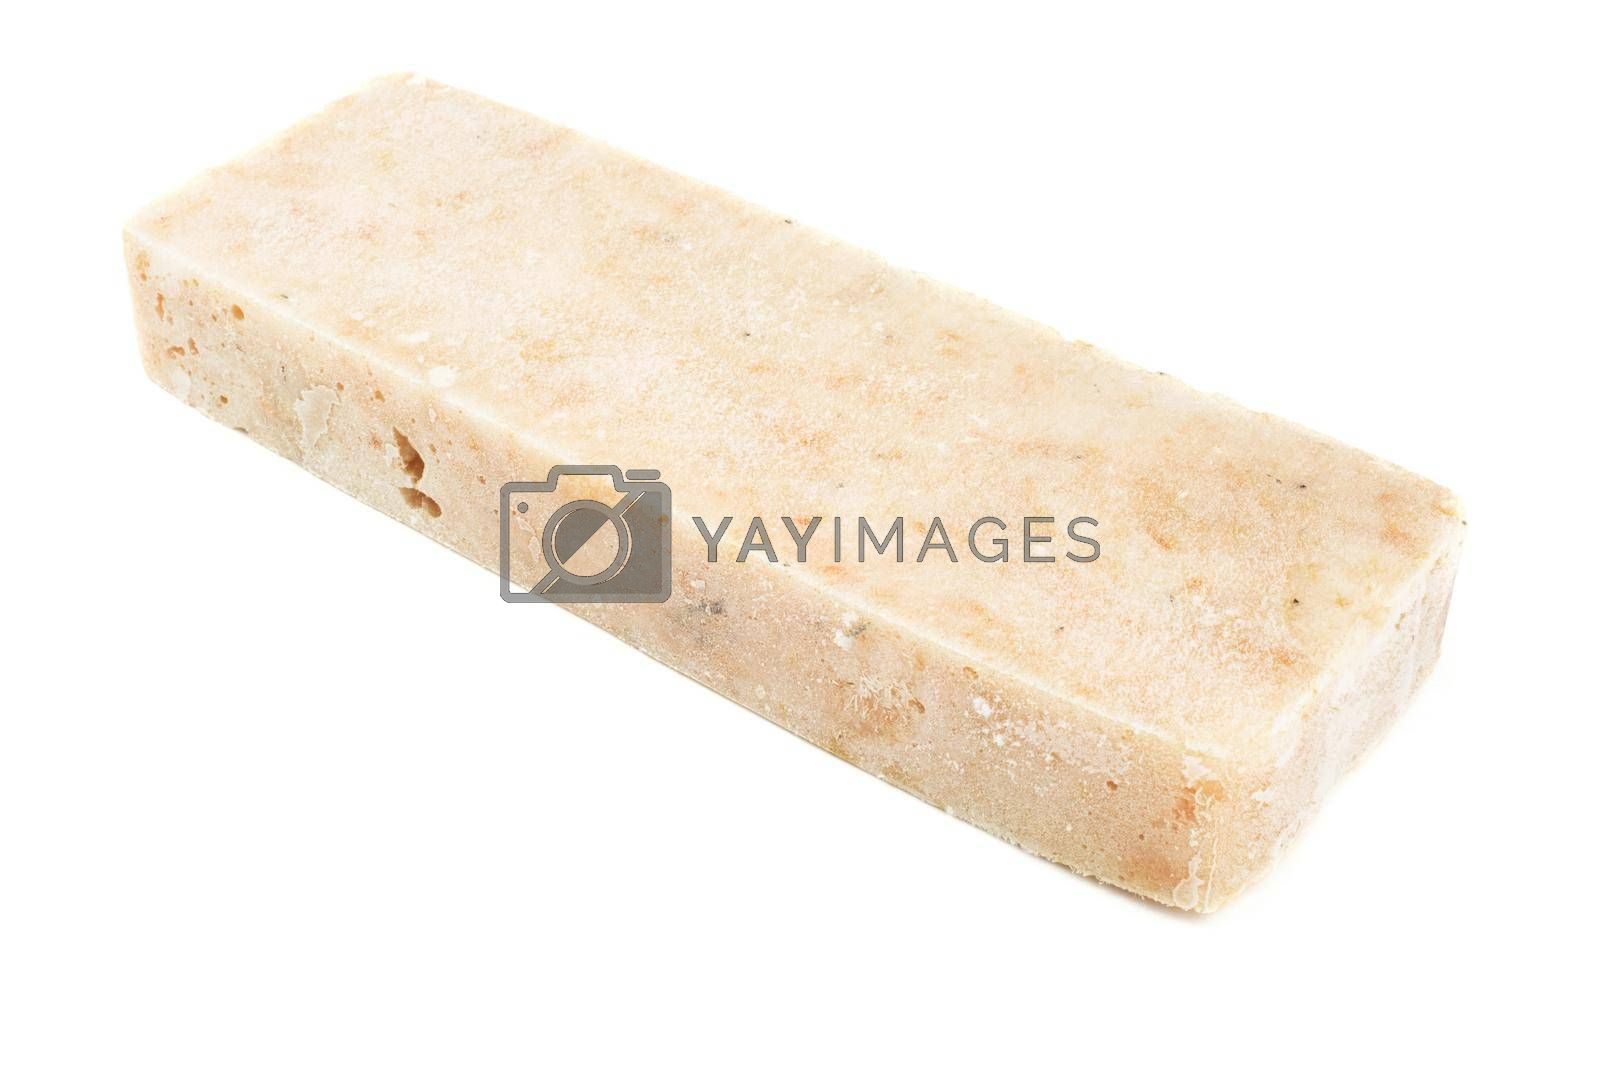 Frozen minced cod fish block isolated on white background, semifinished prepack